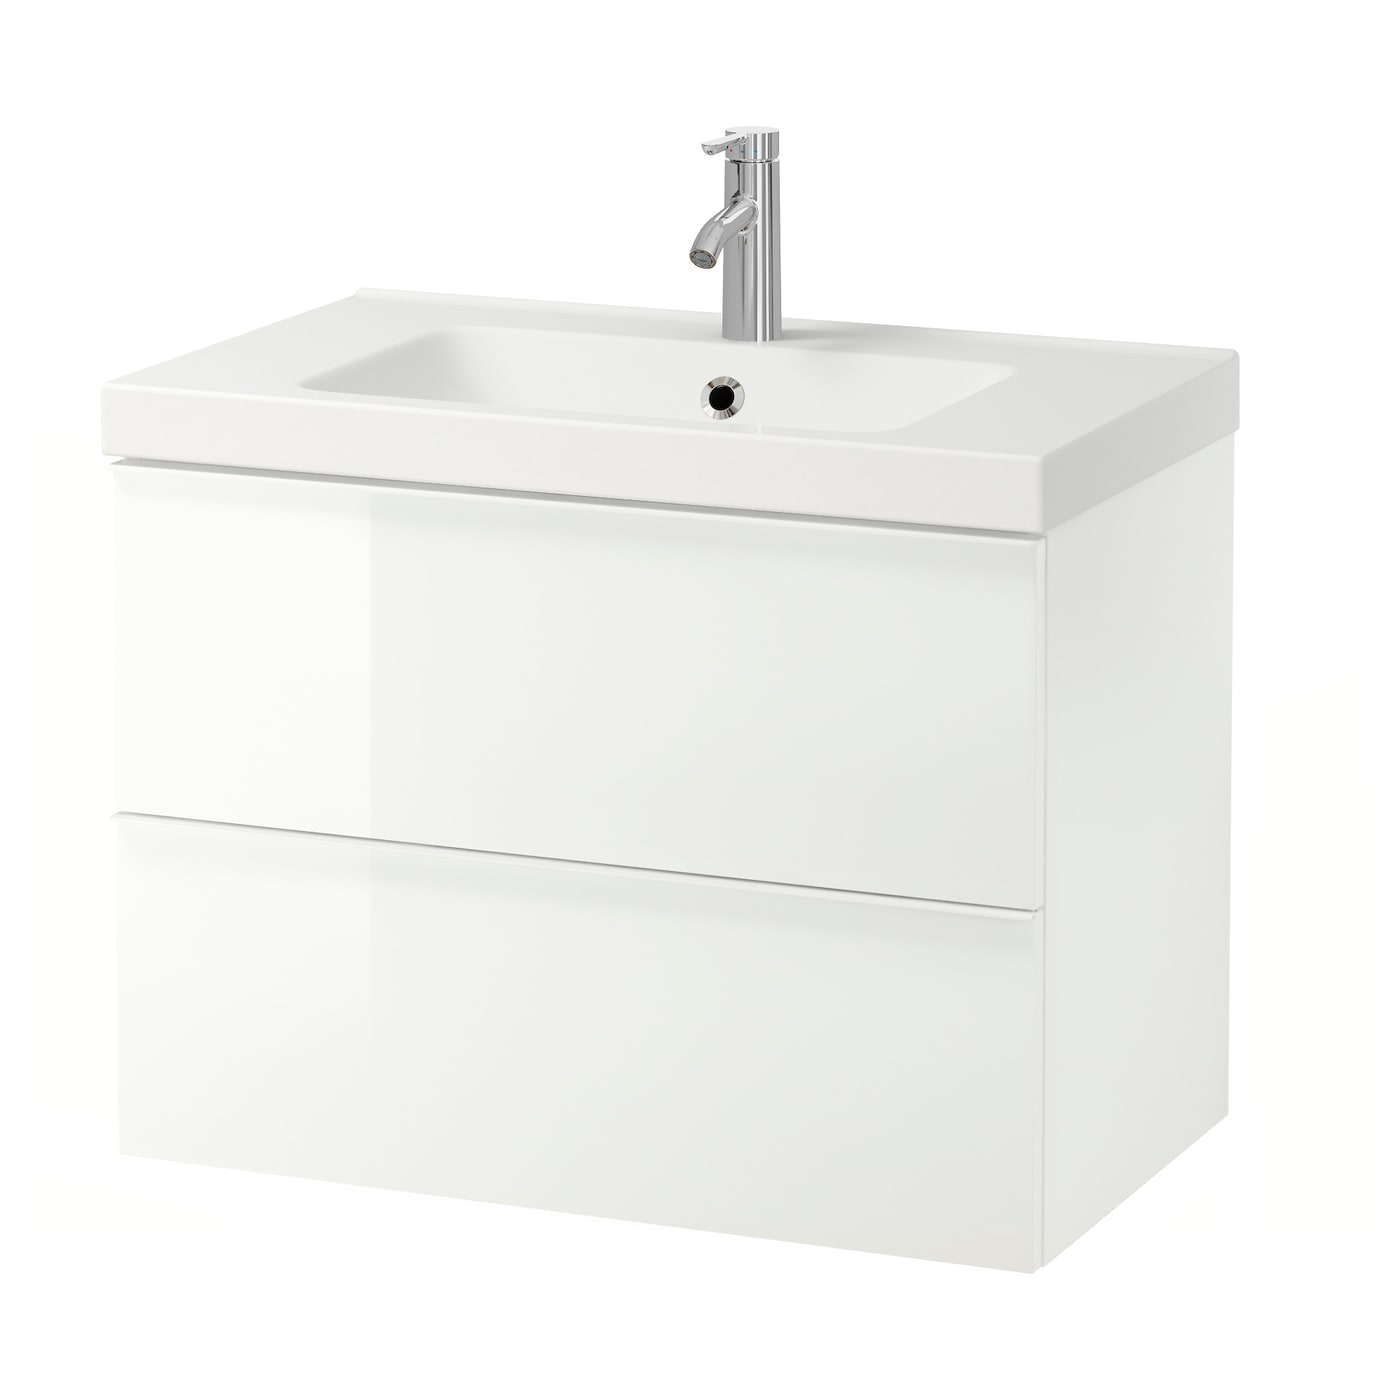 odensvik godmorgon meuble lavabo 2tir brillant blanc 80x49x64 cm ikea. Black Bedroom Furniture Sets. Home Design Ideas